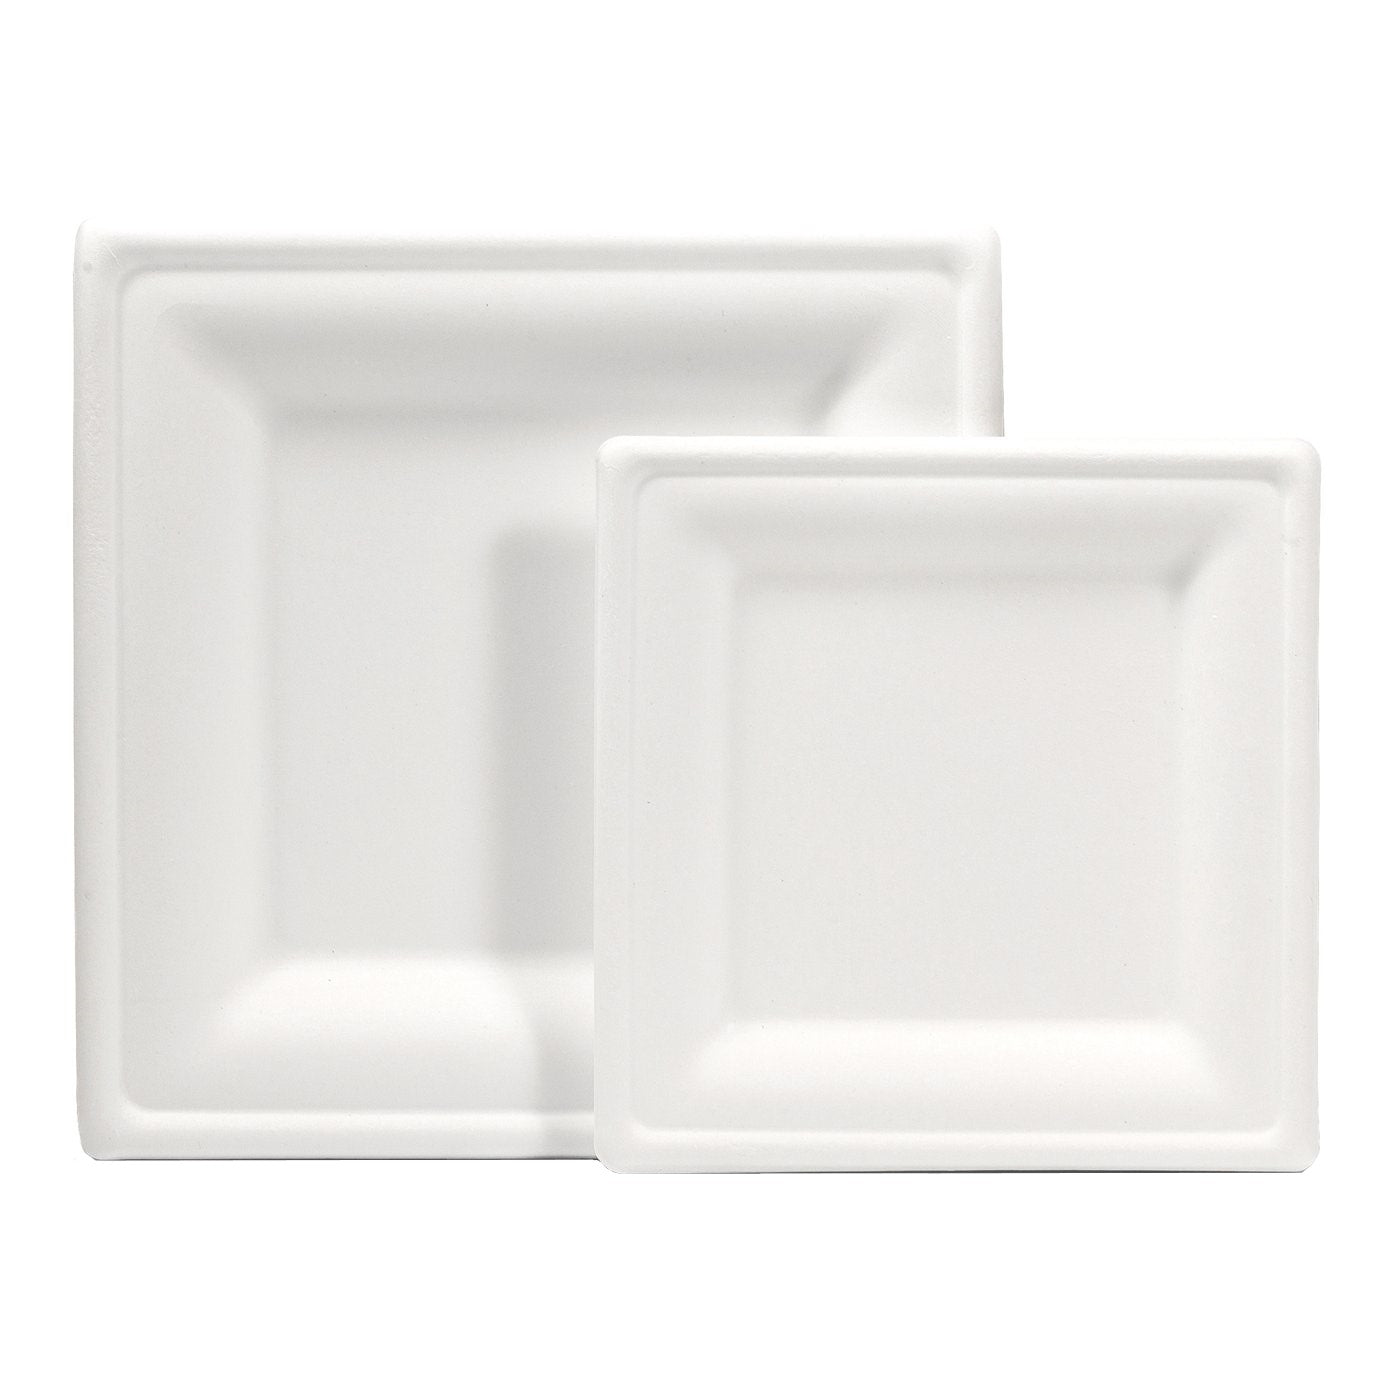 Bagasse Plates and Bowls - Square